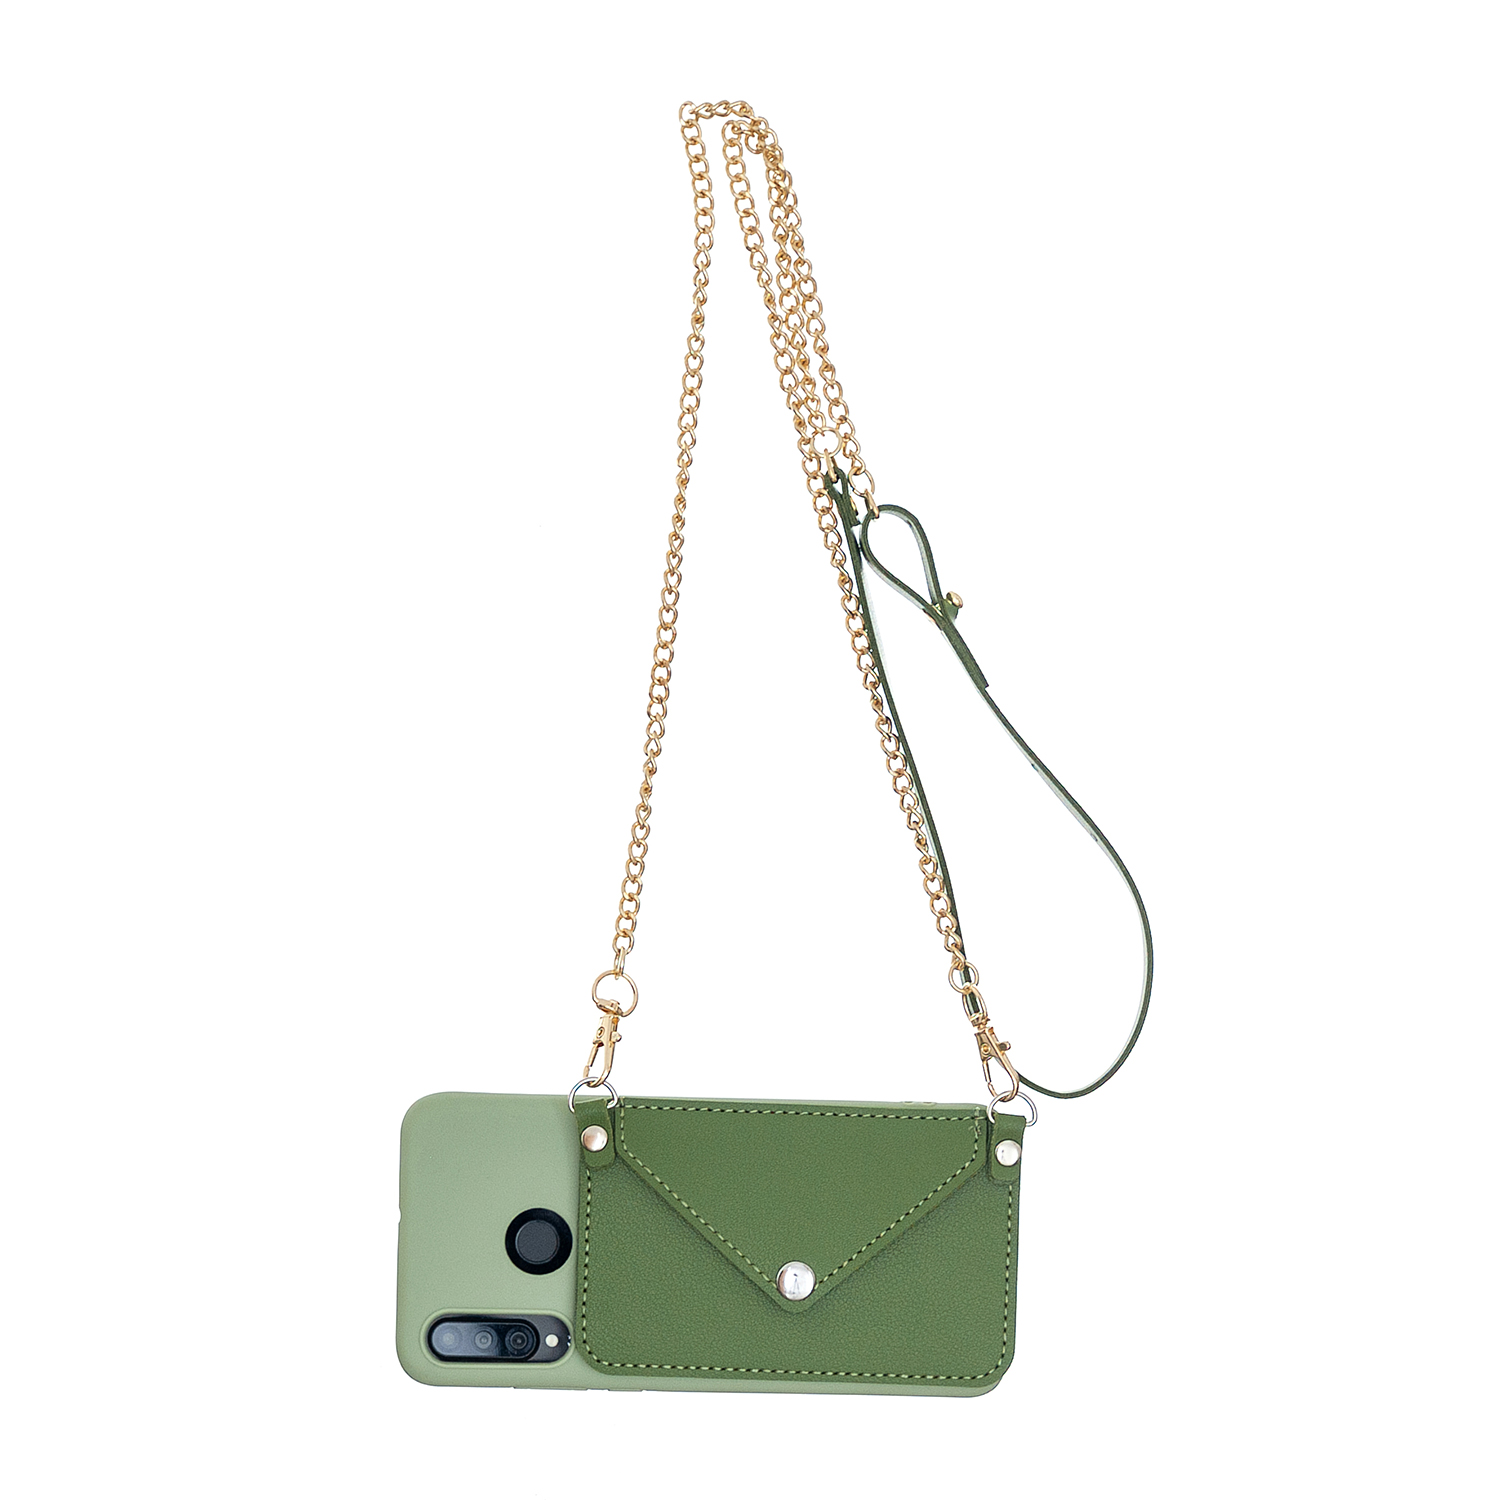 For HUAWEI P30/P30 Lite/P30 Pro Mobile Phone Cover with Pu Leather Card Holder + Hand Rope + Straddle Rope green